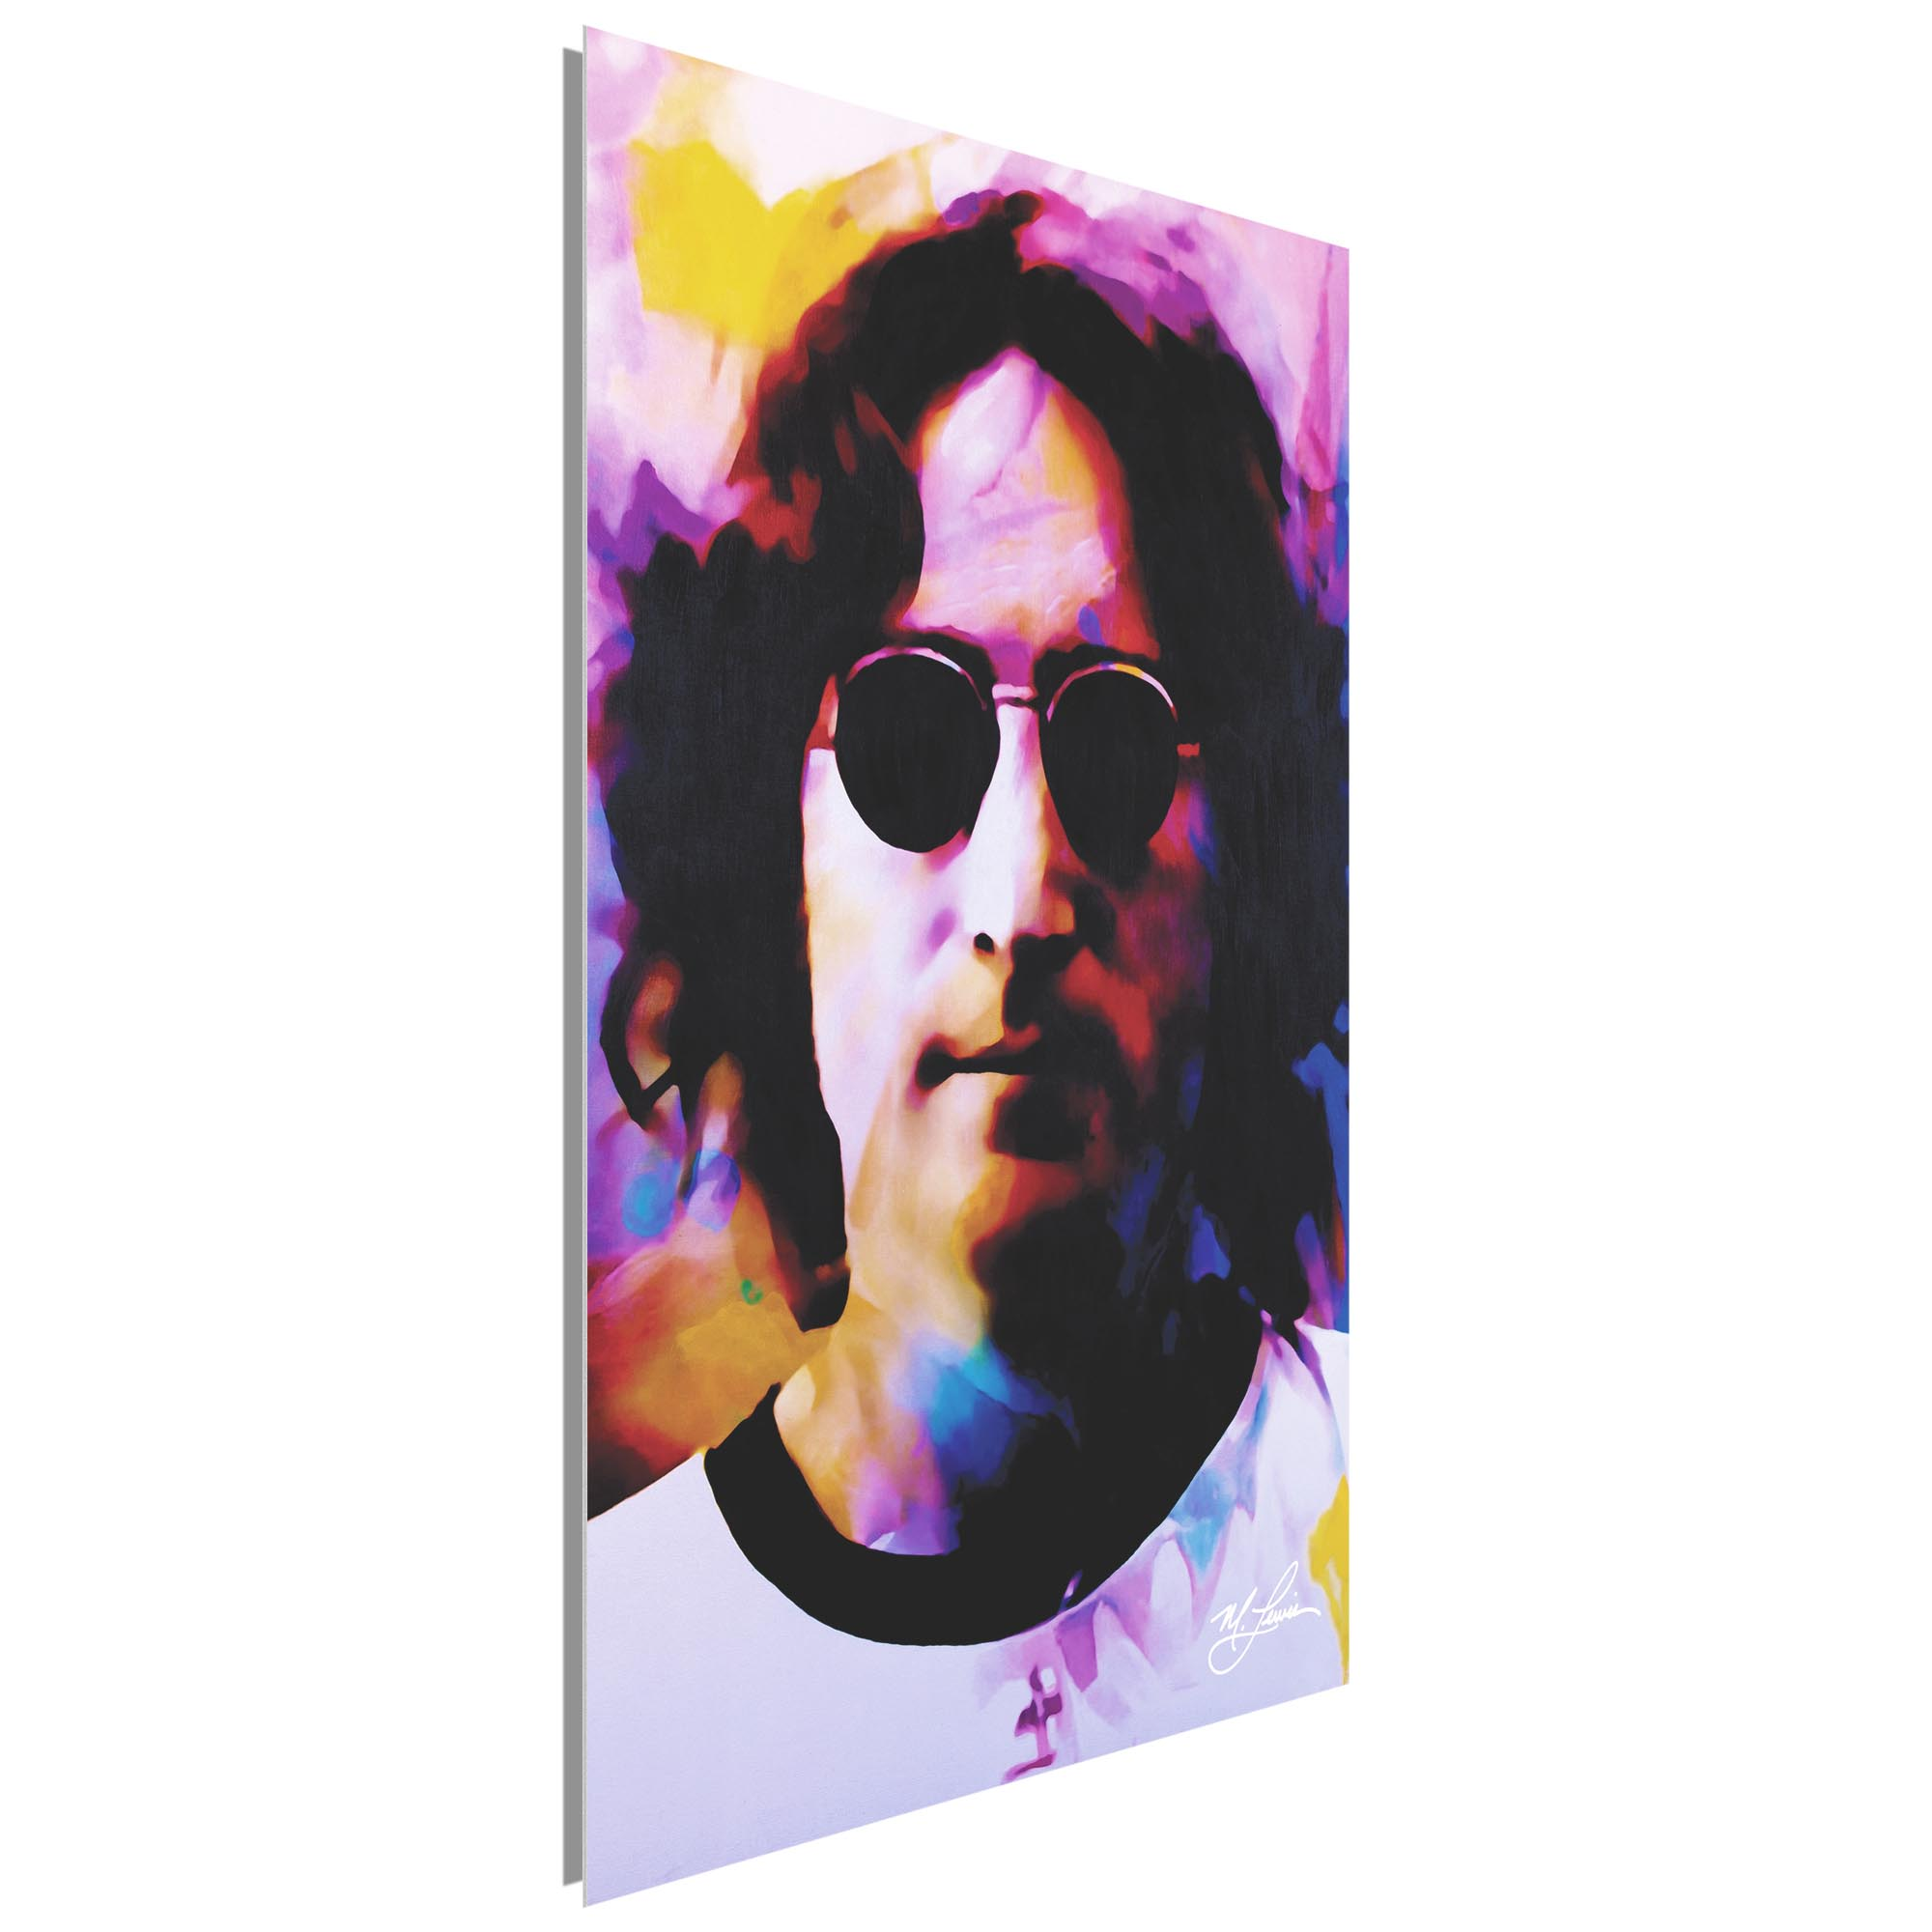 John Lennon Dance of Emotion 22x32 Metal or Plexiglass Pop Art Portrait - Image 2